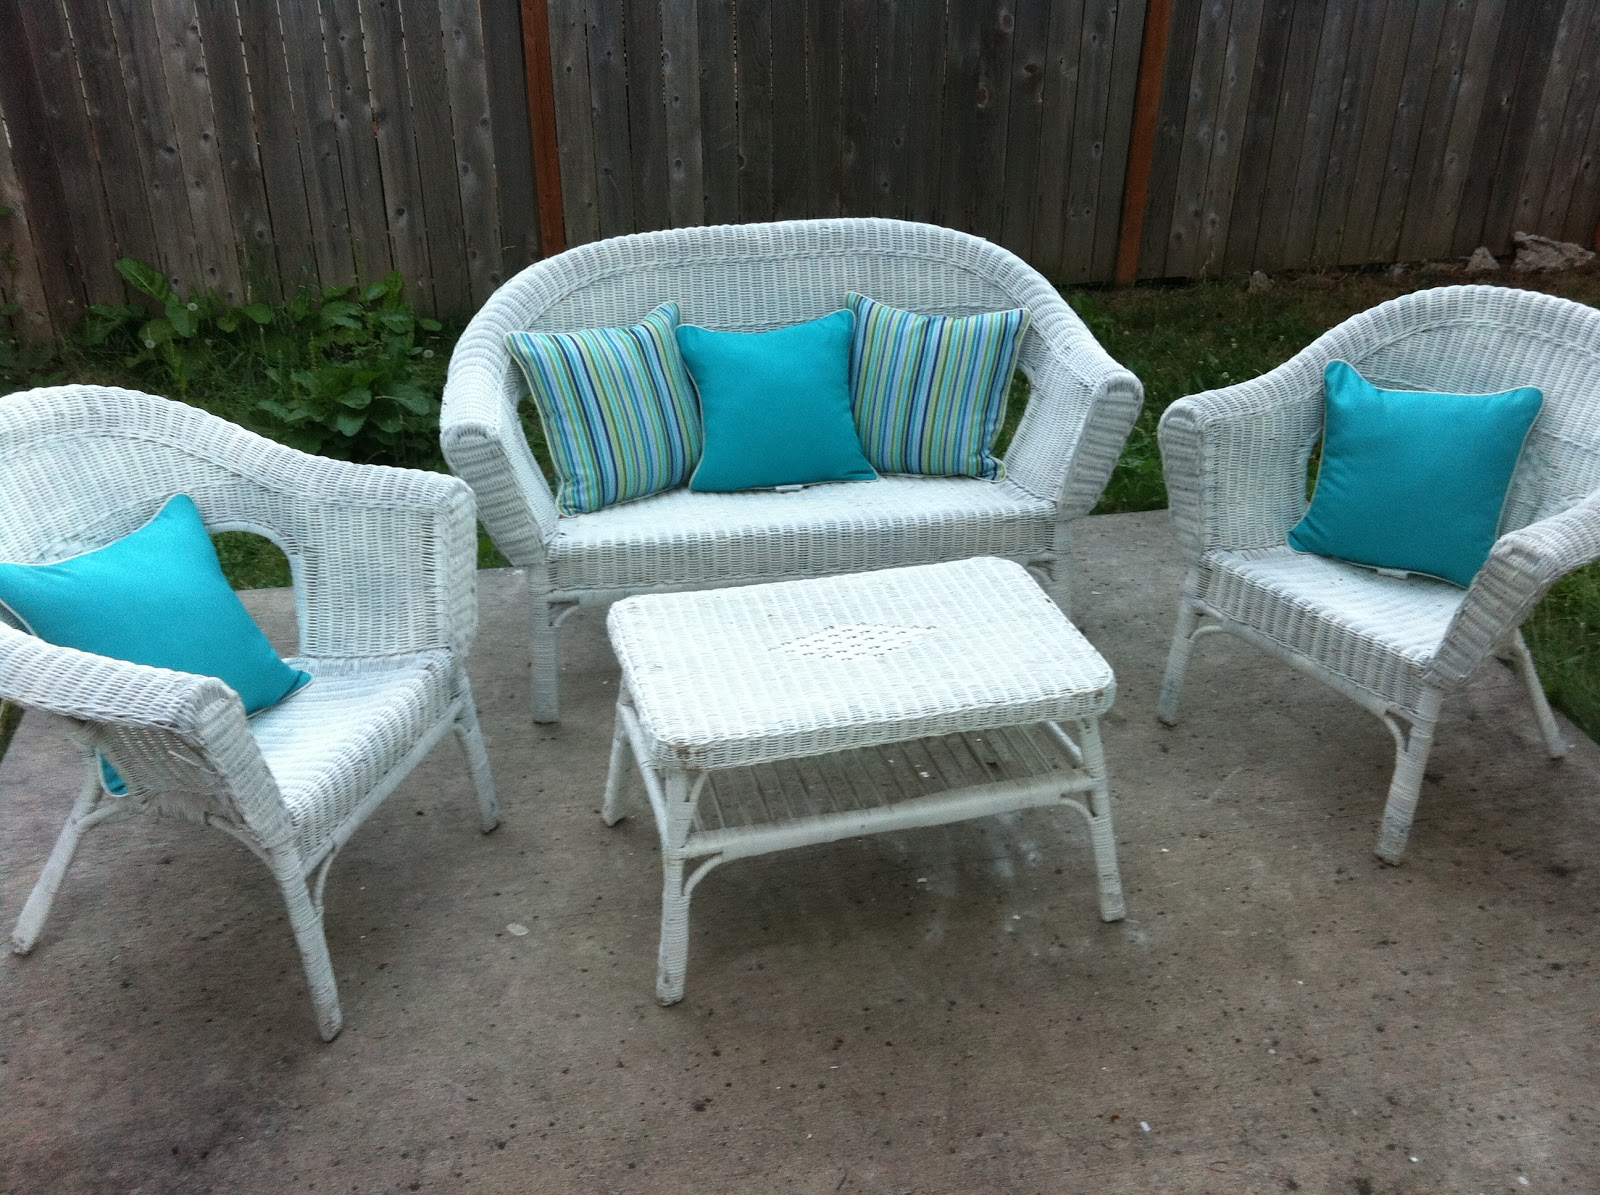 Not So Shabby - Shabby Chic: Patio furniture face lift!